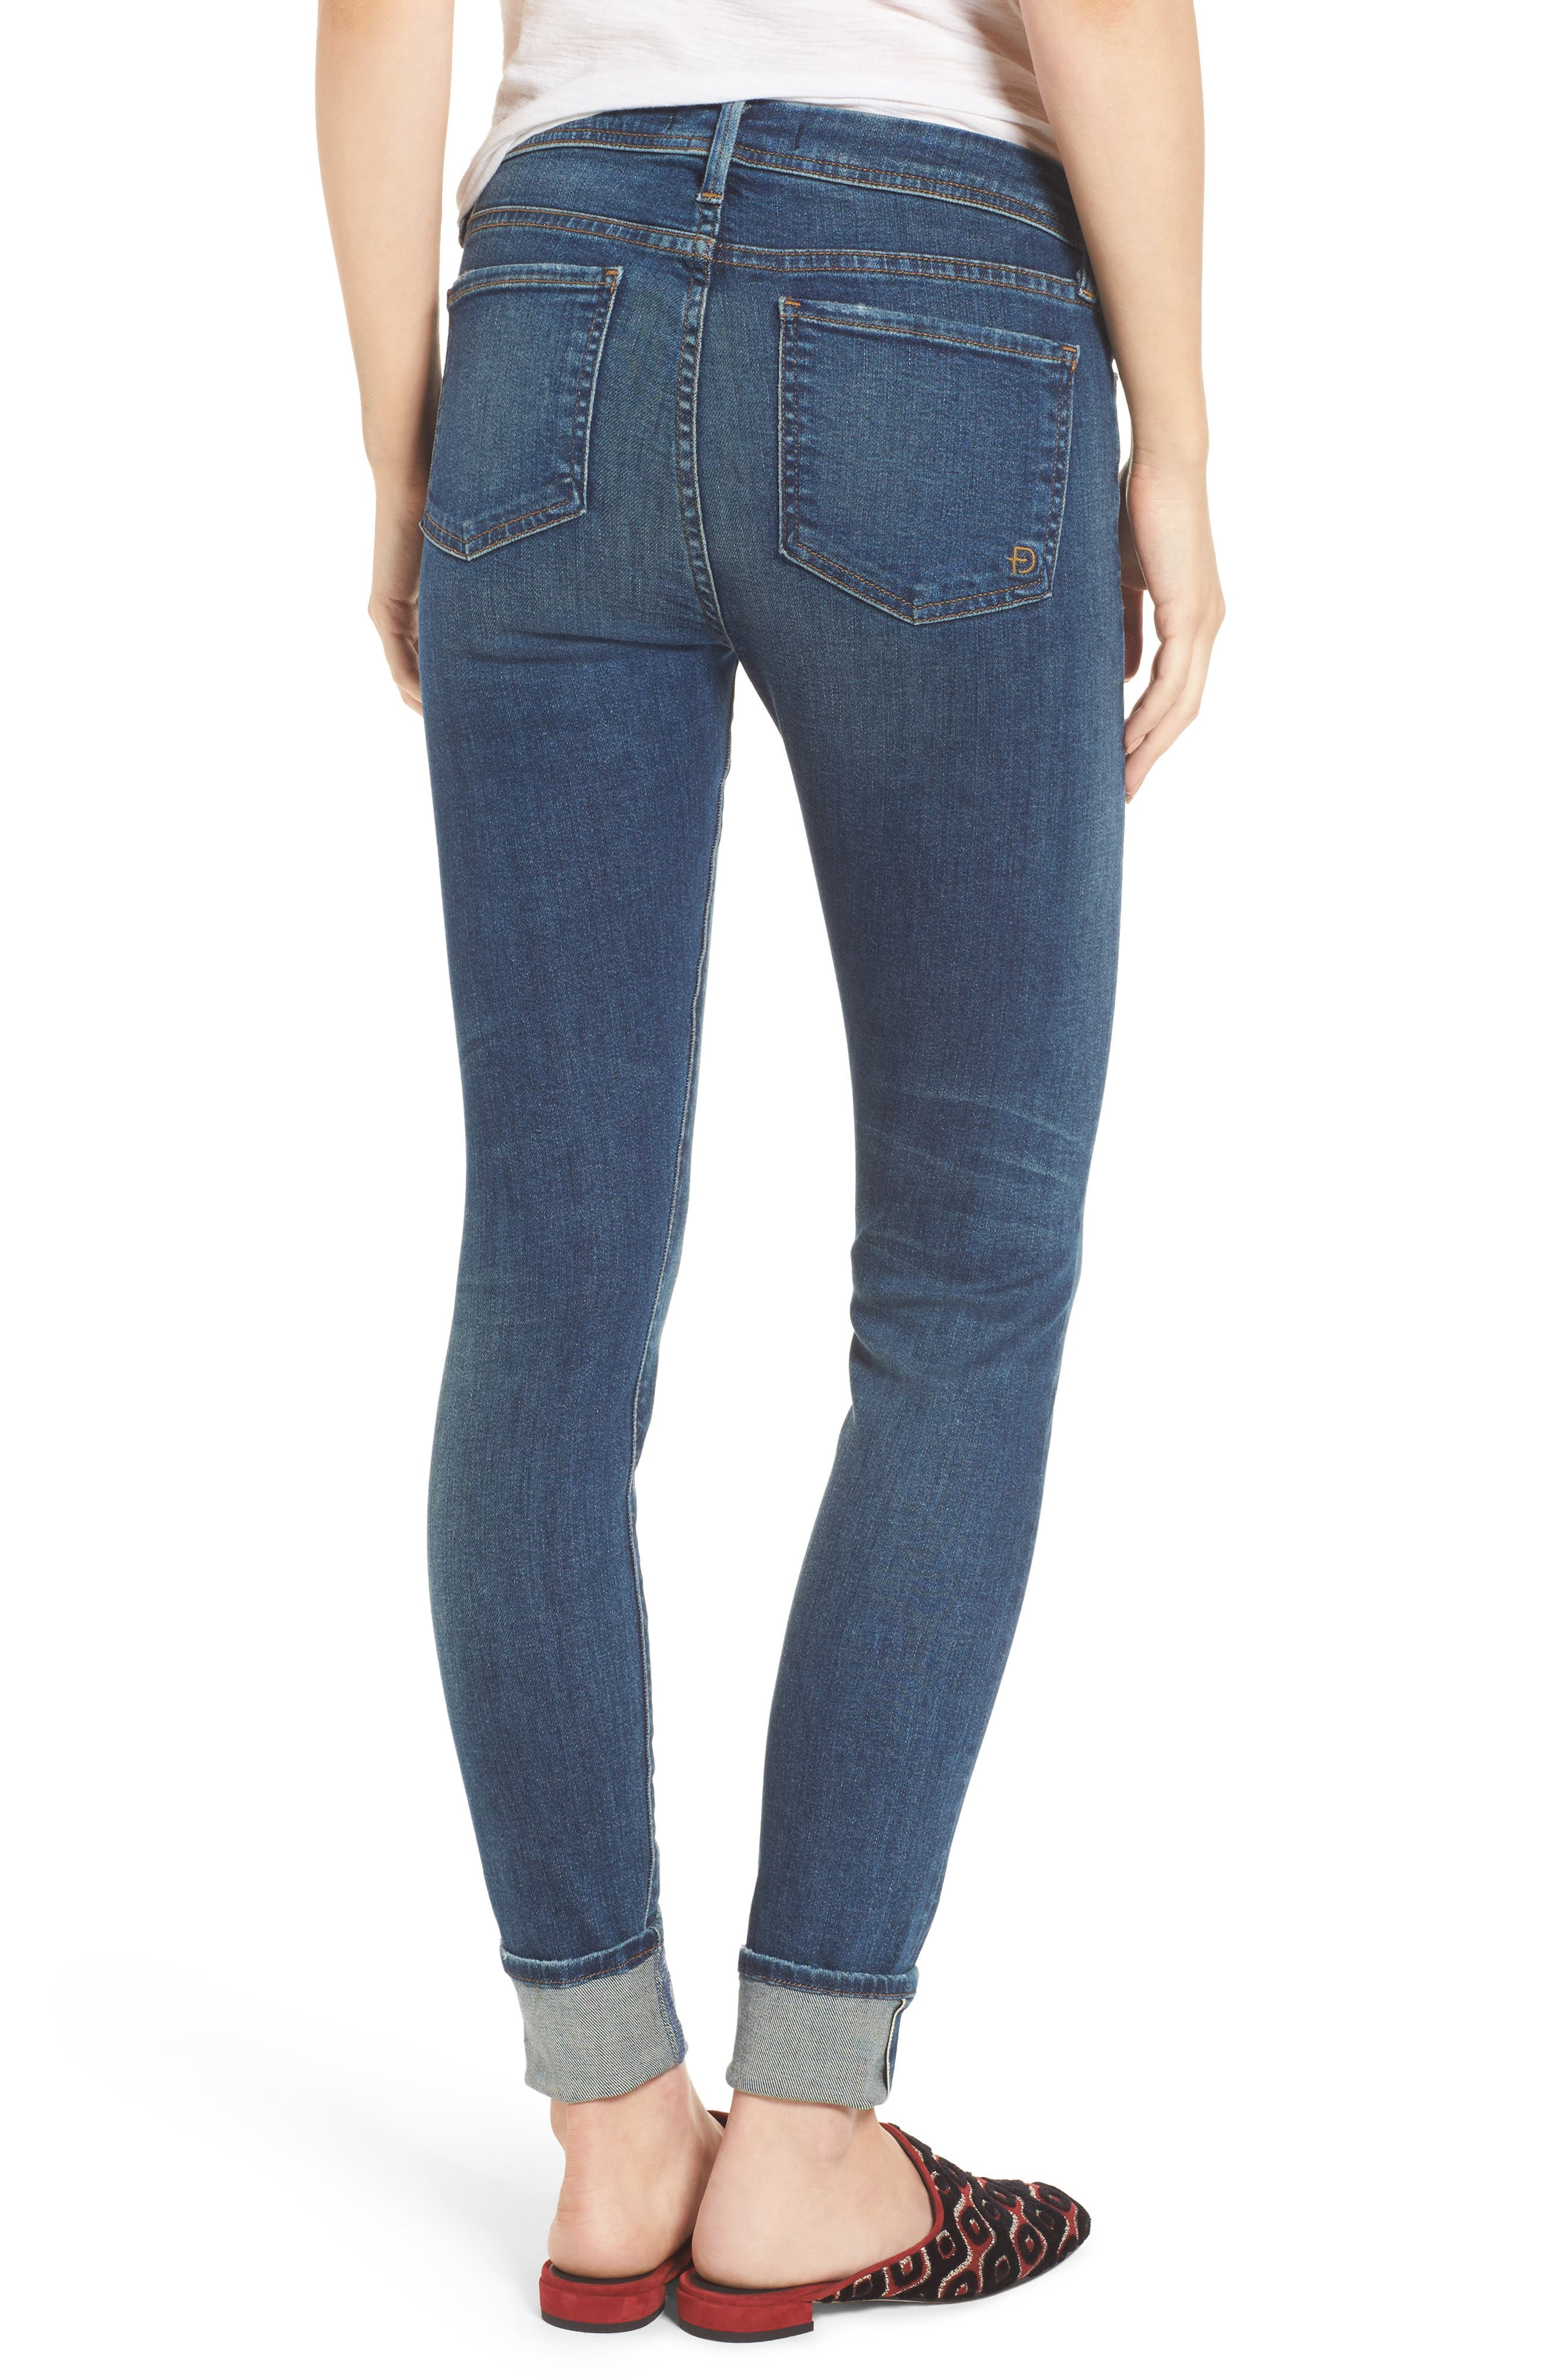 Belvedere Crop Skinny Jeans,                             Alternate thumbnail 2, color,                             8 Year Aged